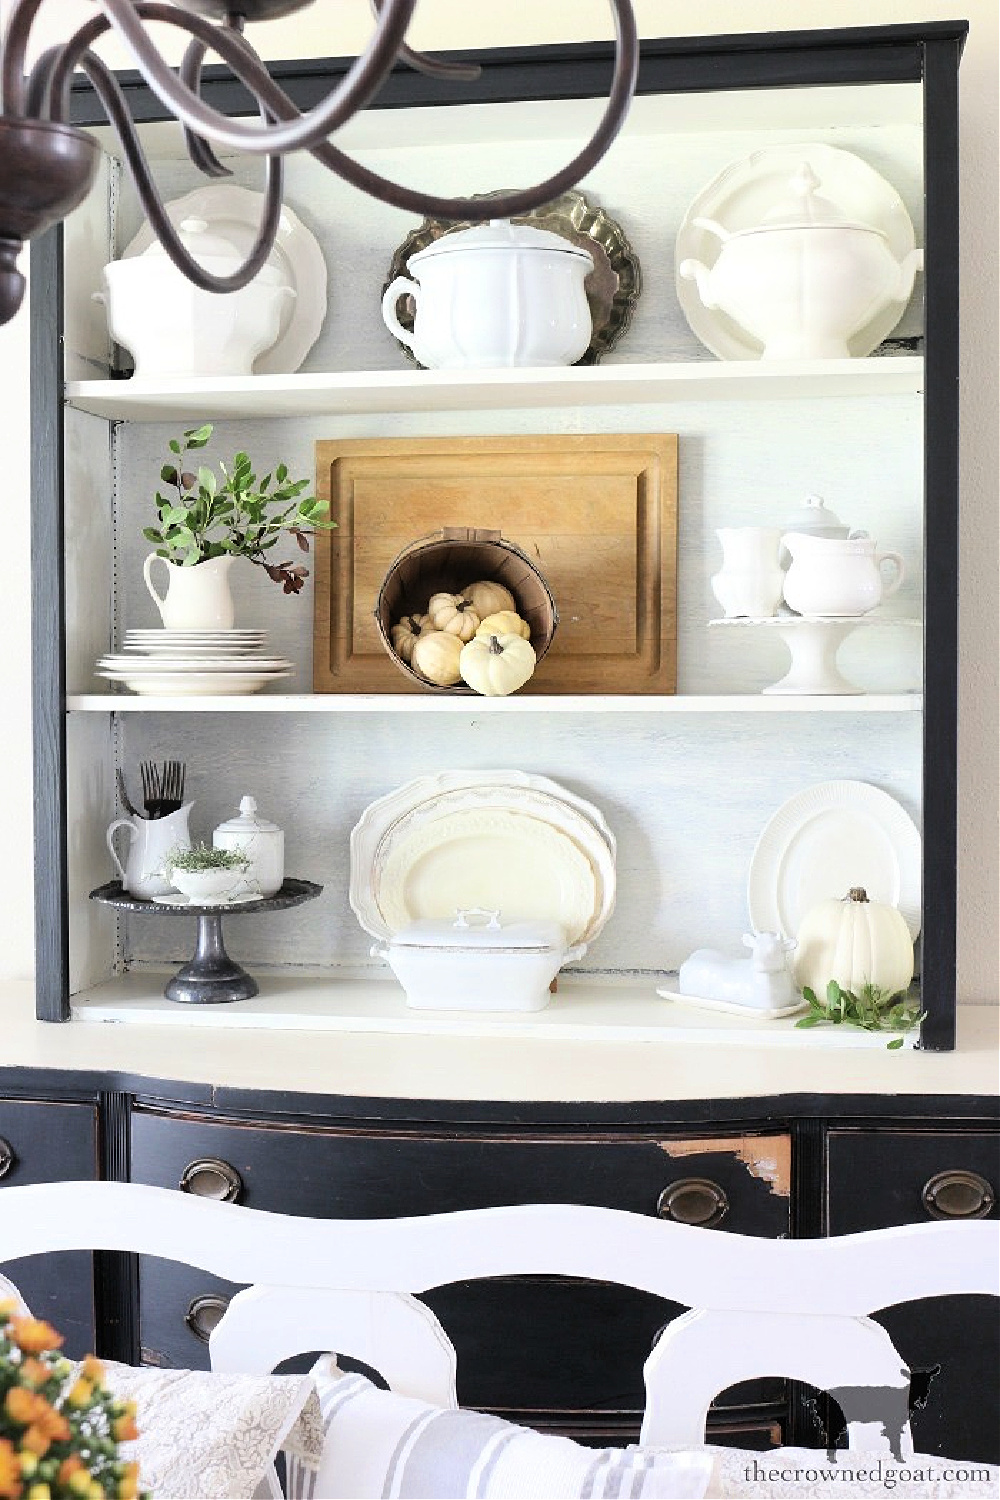 How to Decorate for Fall with Baskets-The Crowned Goat